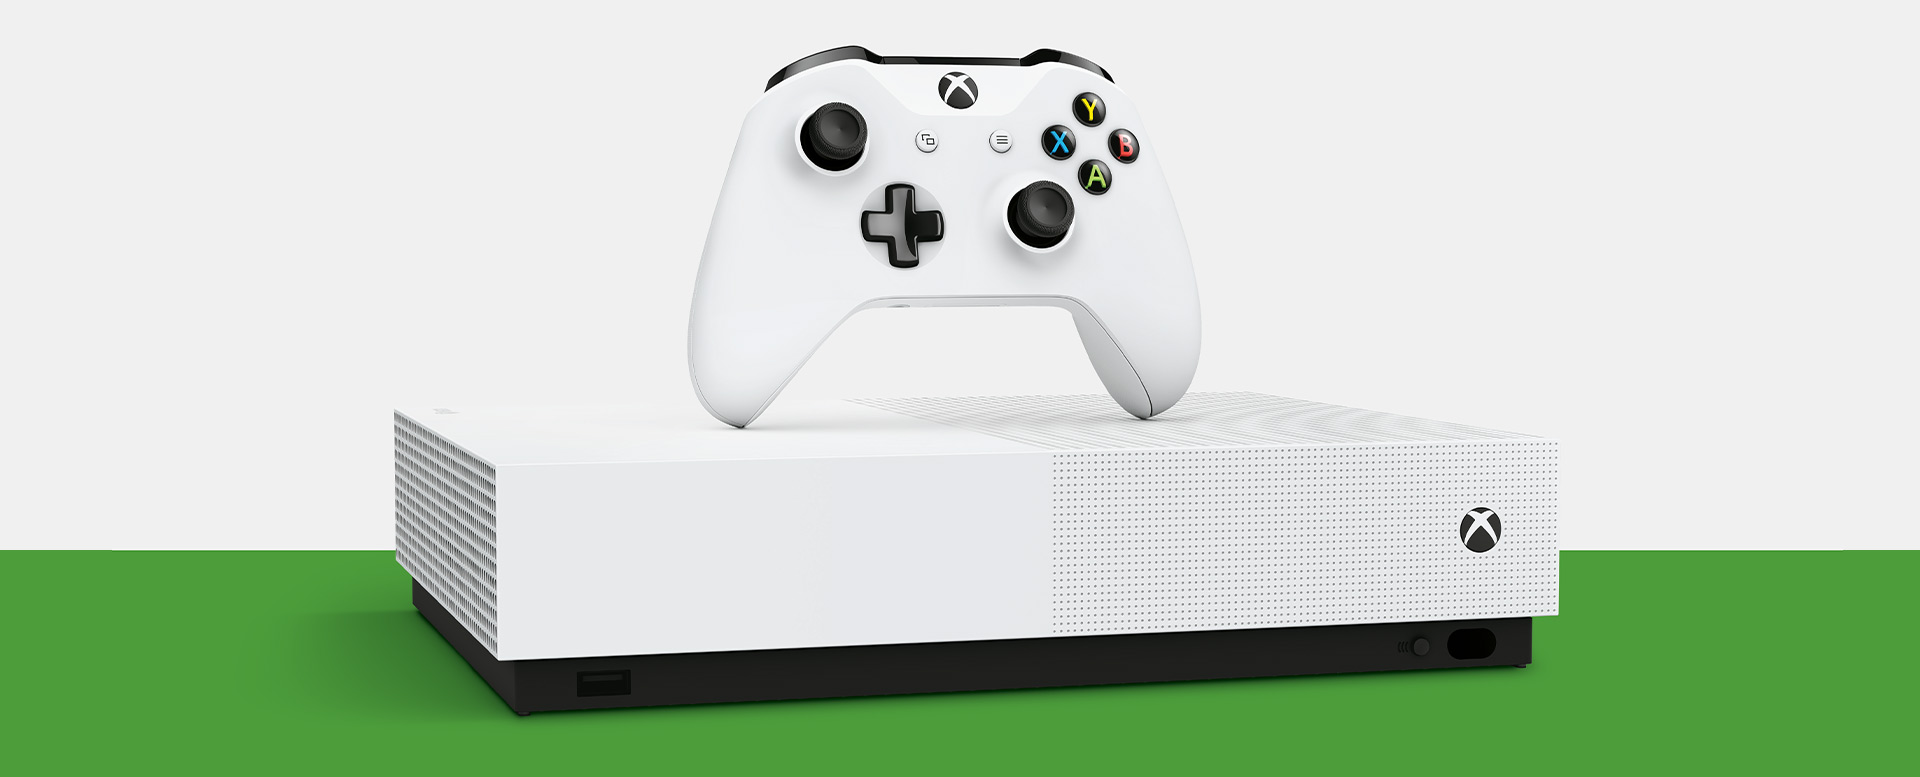 Console Xbox One S All-Digital Edition davanti all'immagine della confezione di un bundle